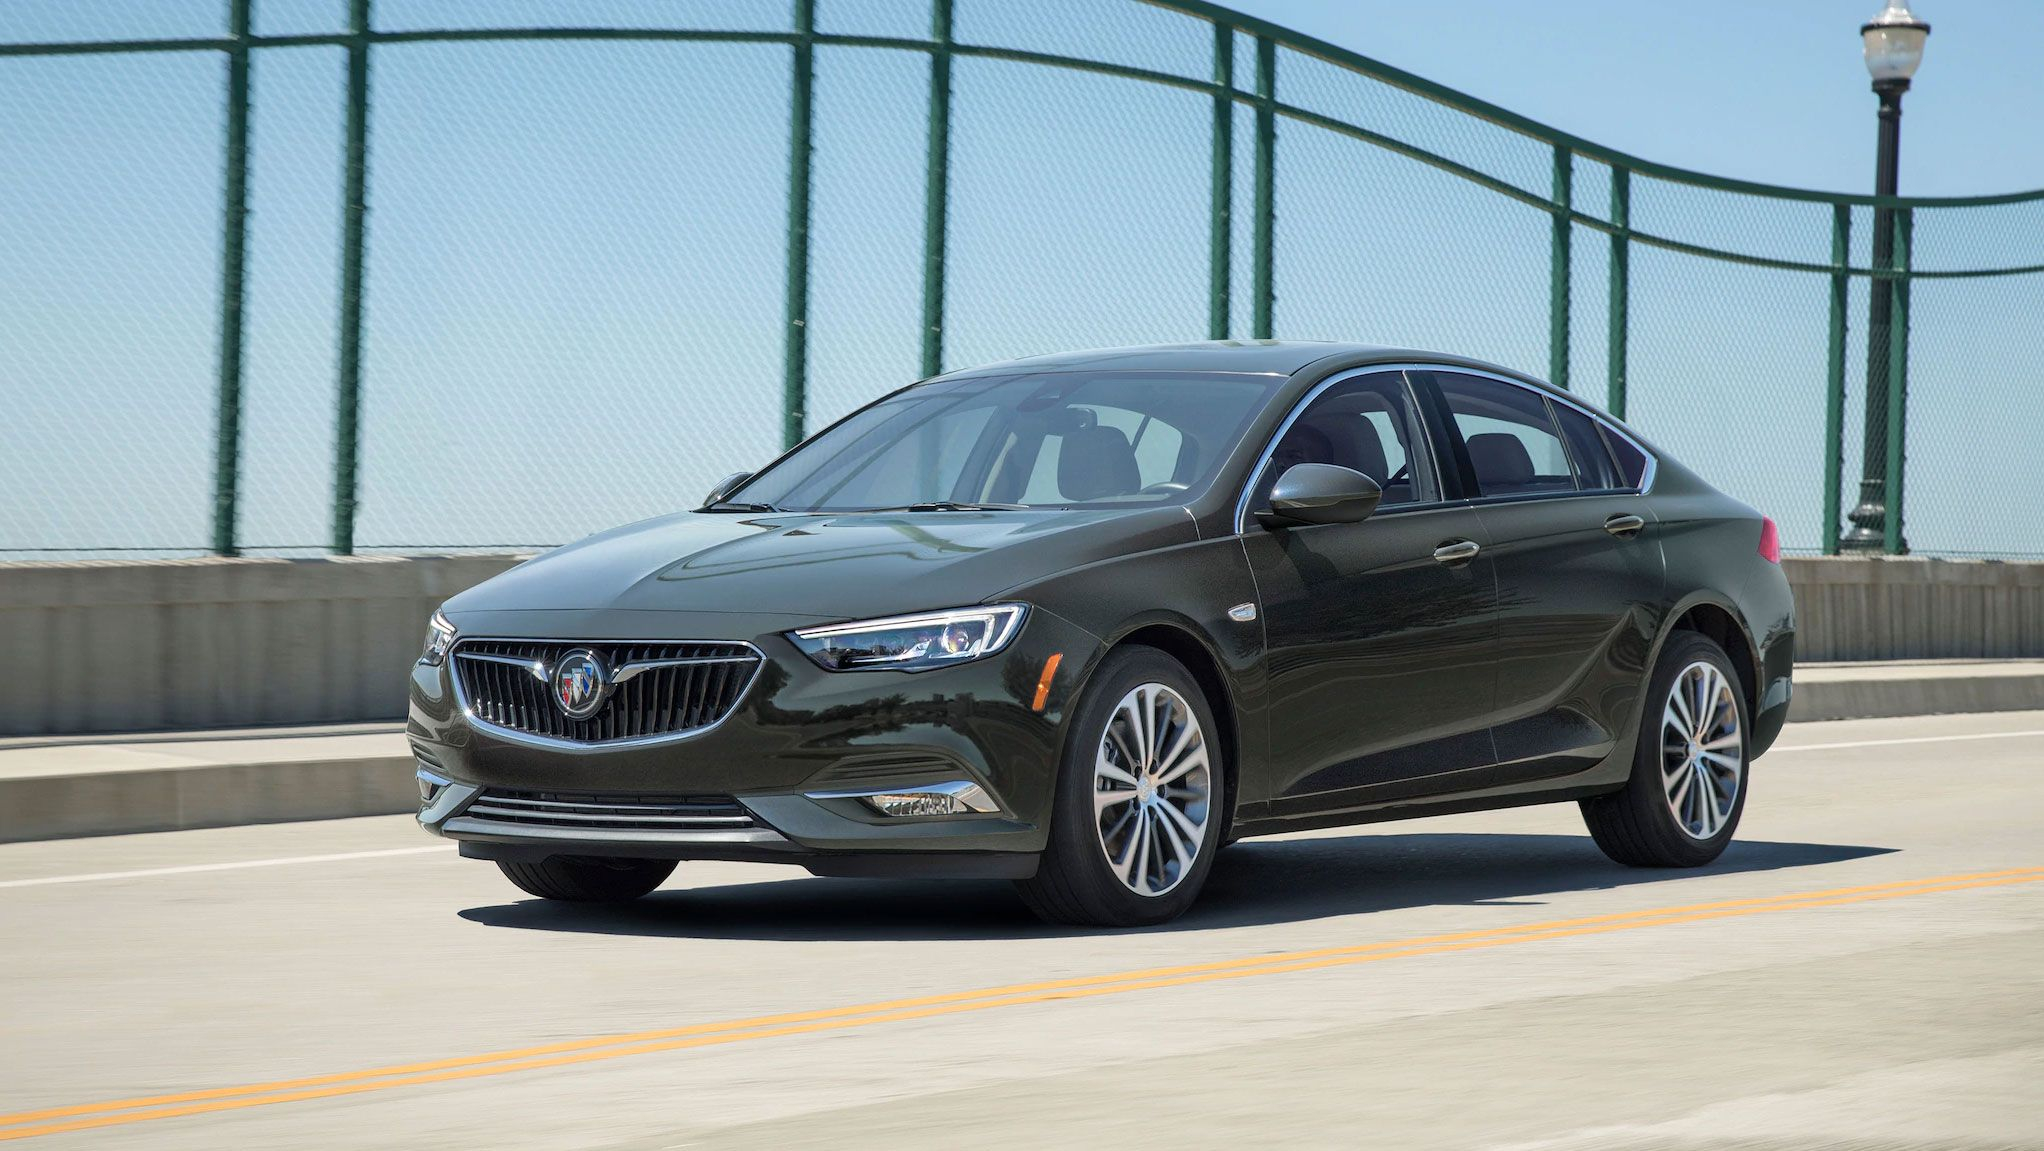 2020 Buick Regal Sportback Review, Pricing, And Specs 2021 Buick Regal Lease, Length, Trim Levels